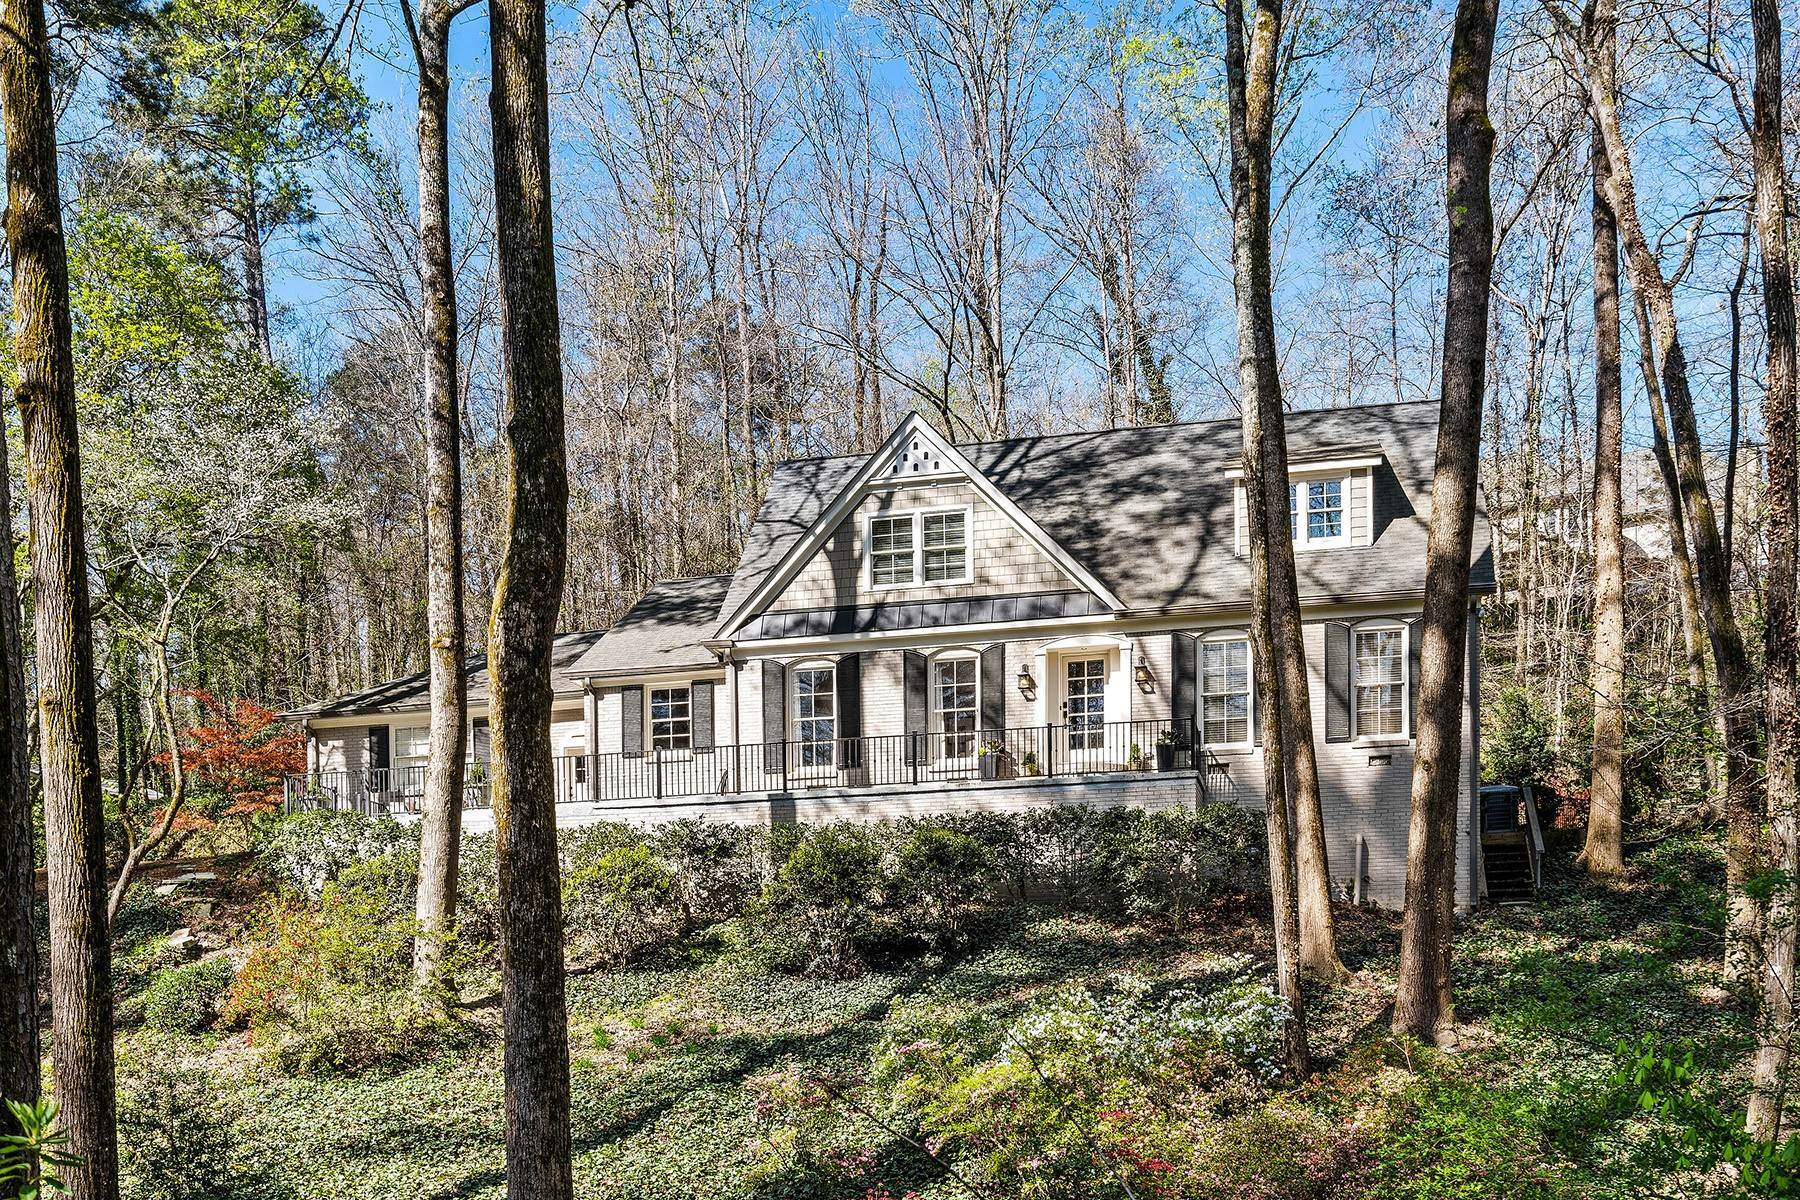 Single Family Homes for Sale at Fabulous Updated and Expanded Home Near Chastain Park 4944 Carol Lane Atlanta, Georgia 30327 United States